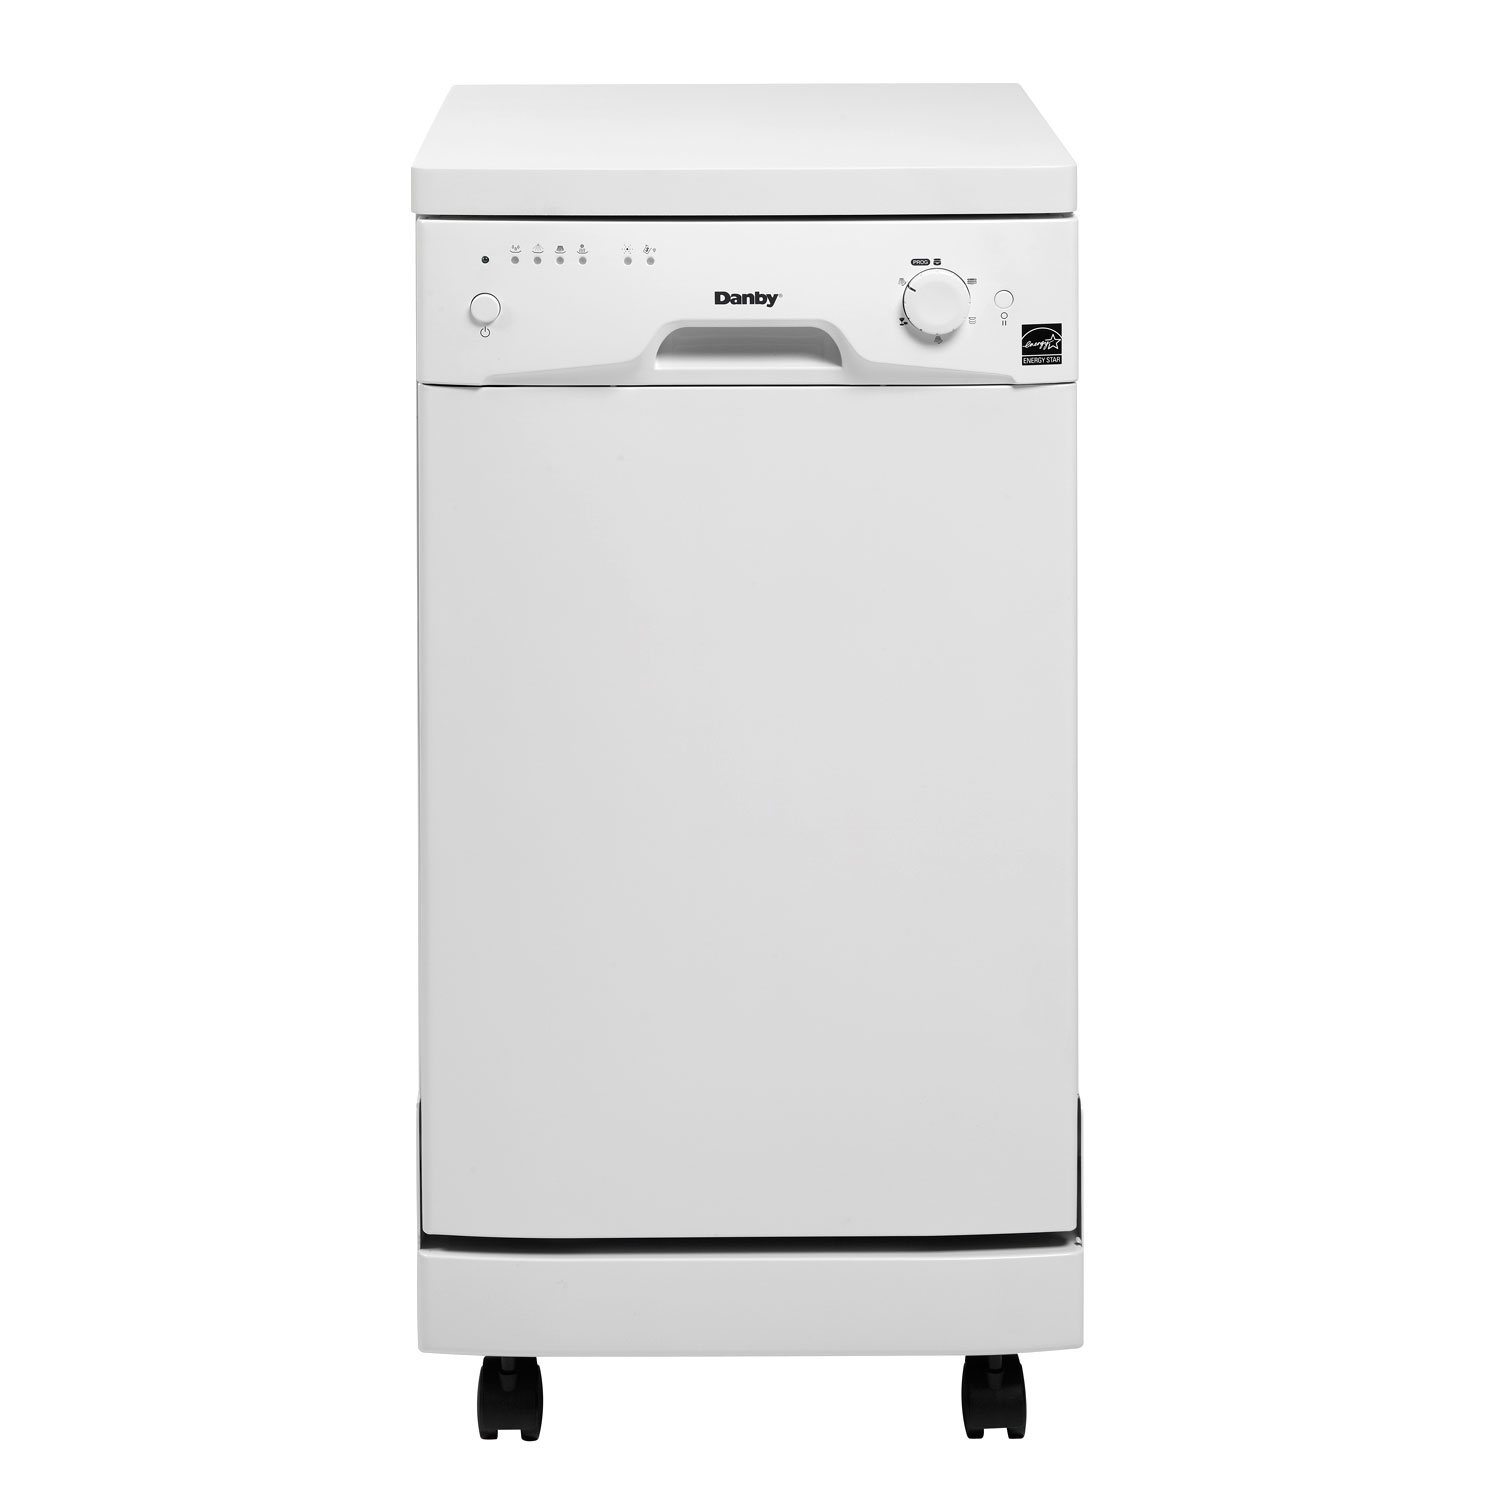 How Much Kitchen Space Do I Need For My New Appliance